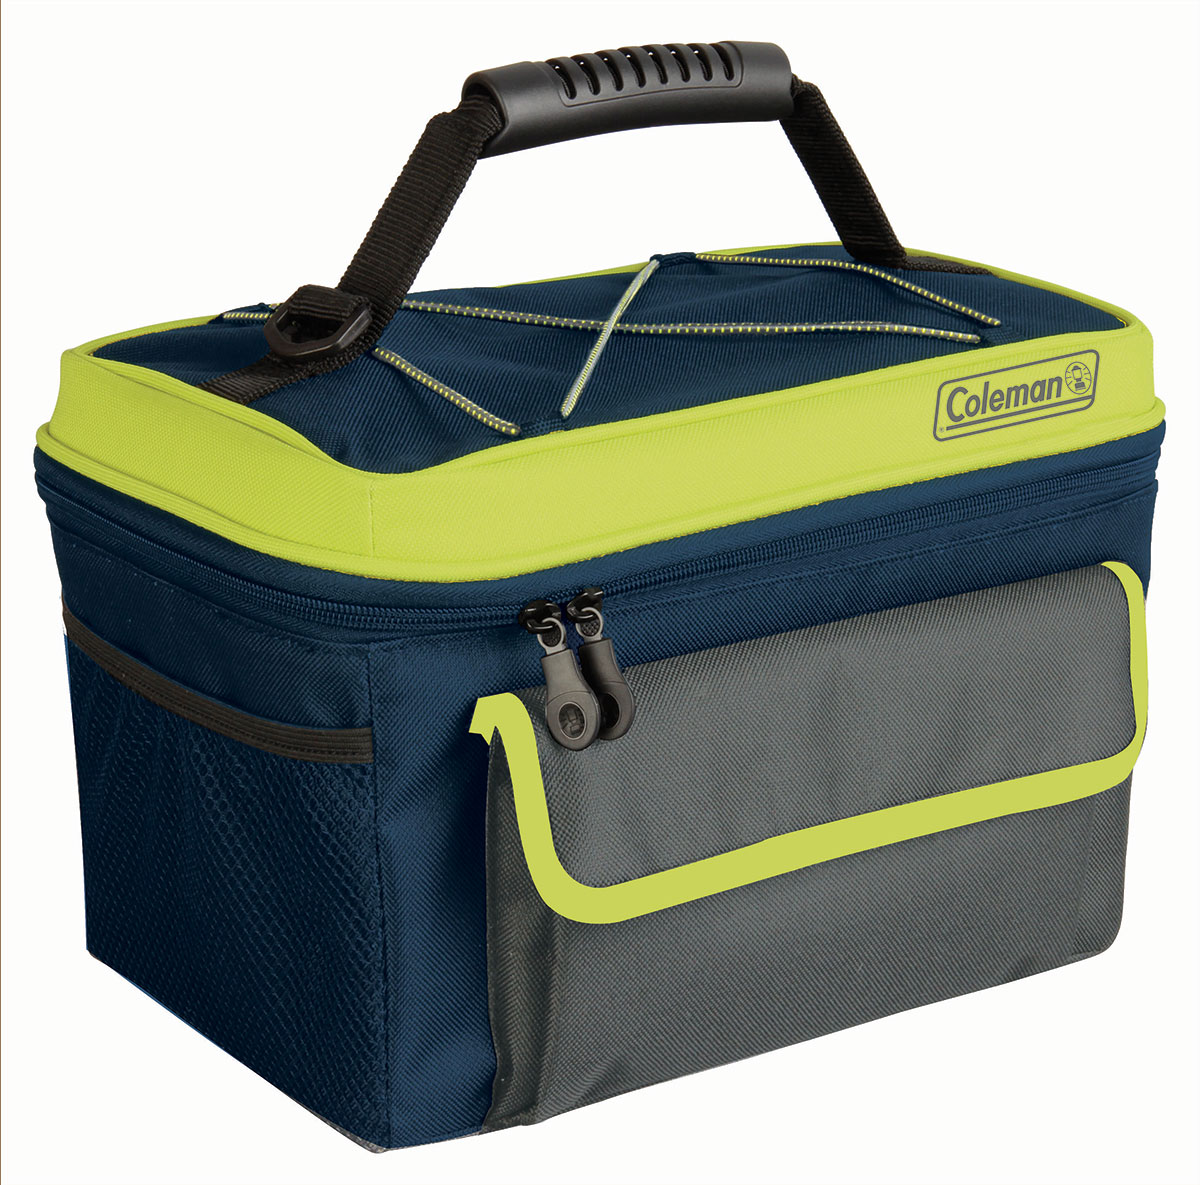 Coleman Rugged 10 Can Lunch Box